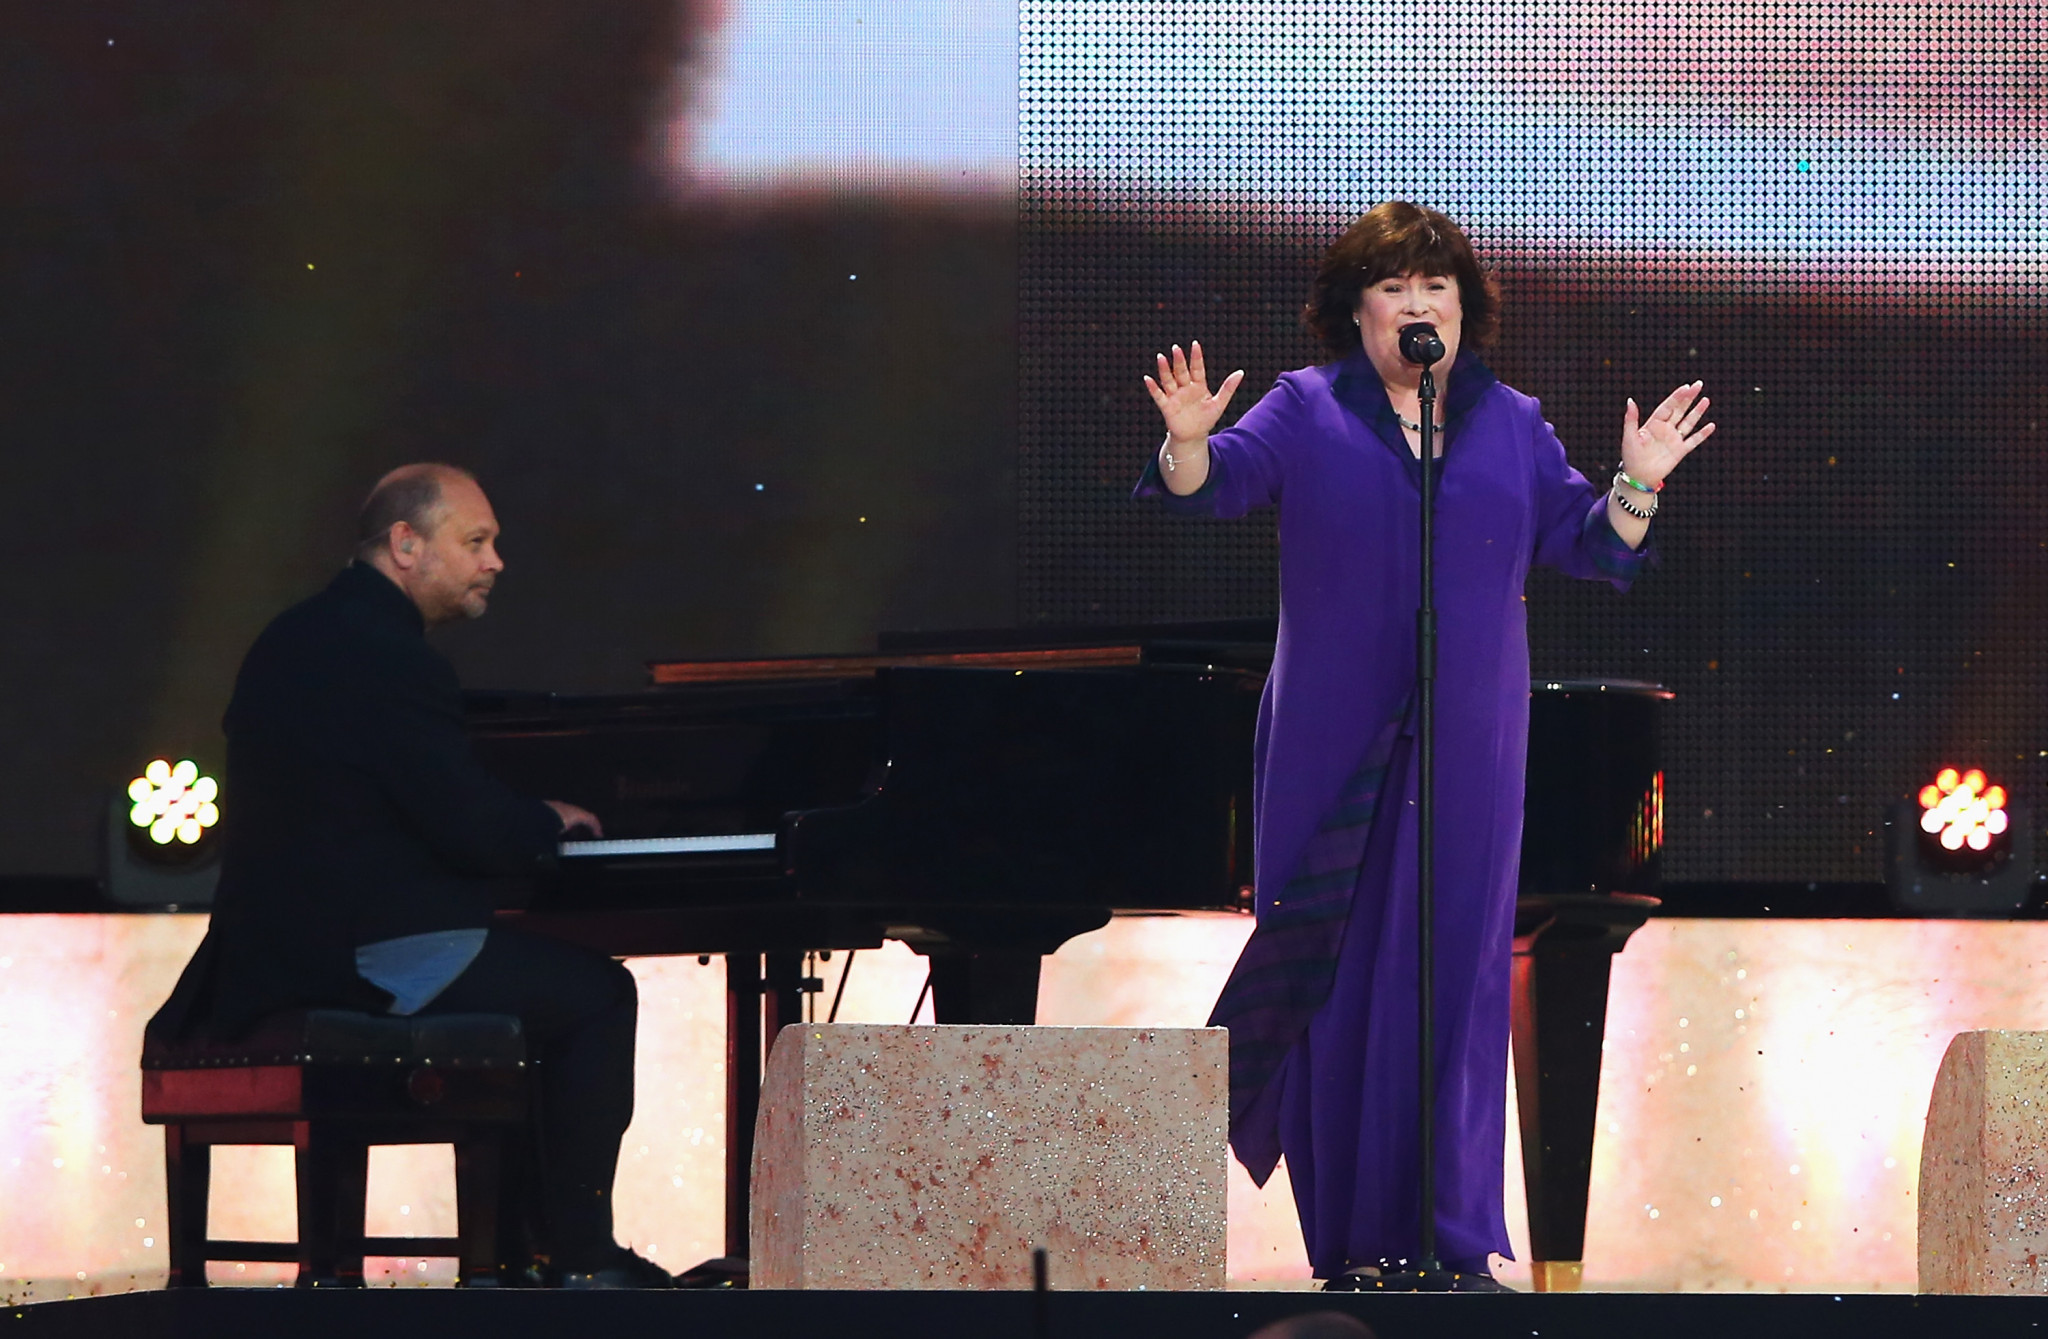 Susan Boyle's Wings to Fly accompanies release of the doves at Tokyo 2020 Opening Ceremony